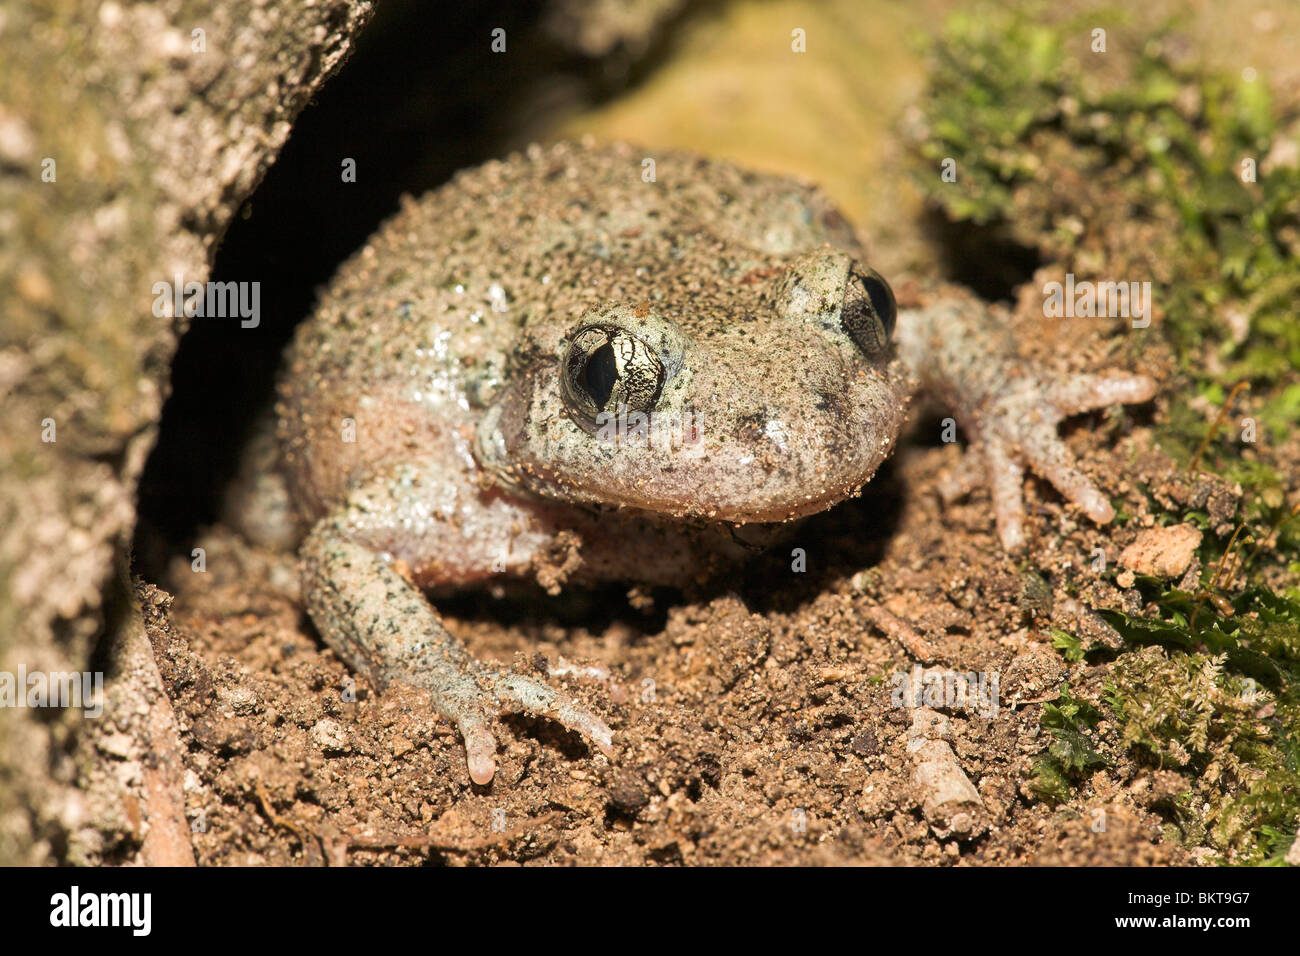 Photo of a common midwife toad in a hole under a tree - Stock Image